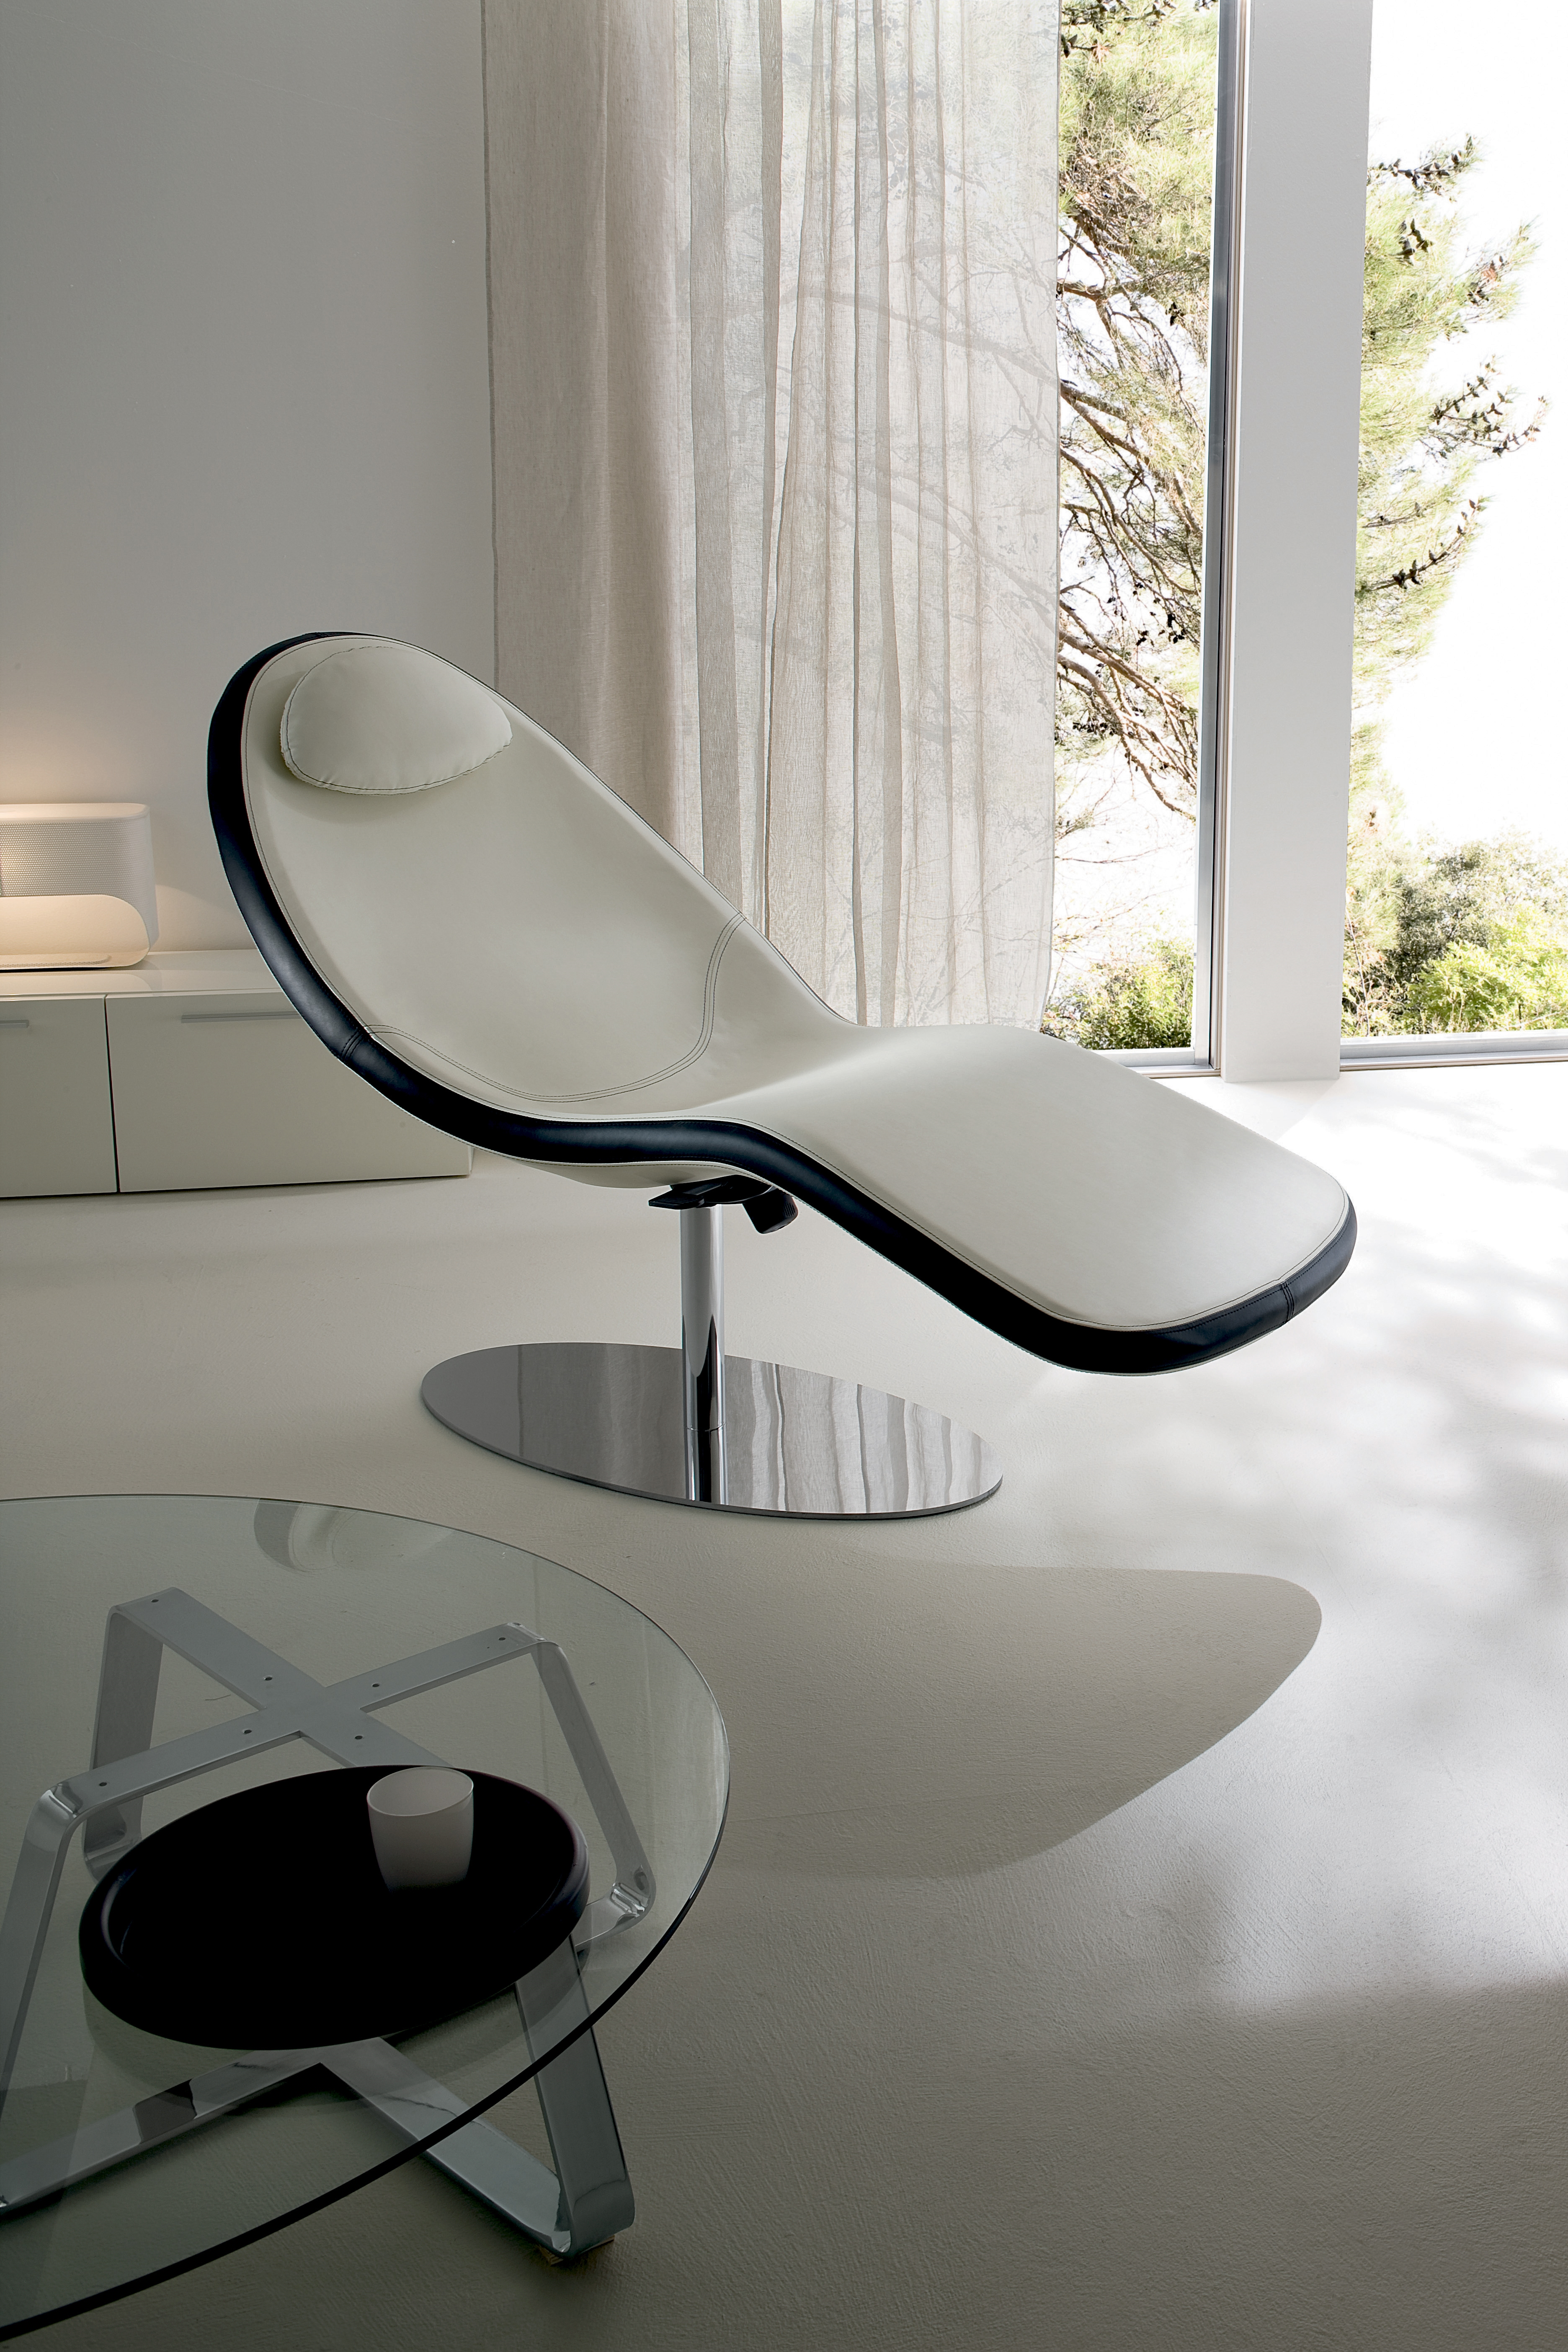 CHAISE LONGUE RELAX IN PELLE NERA